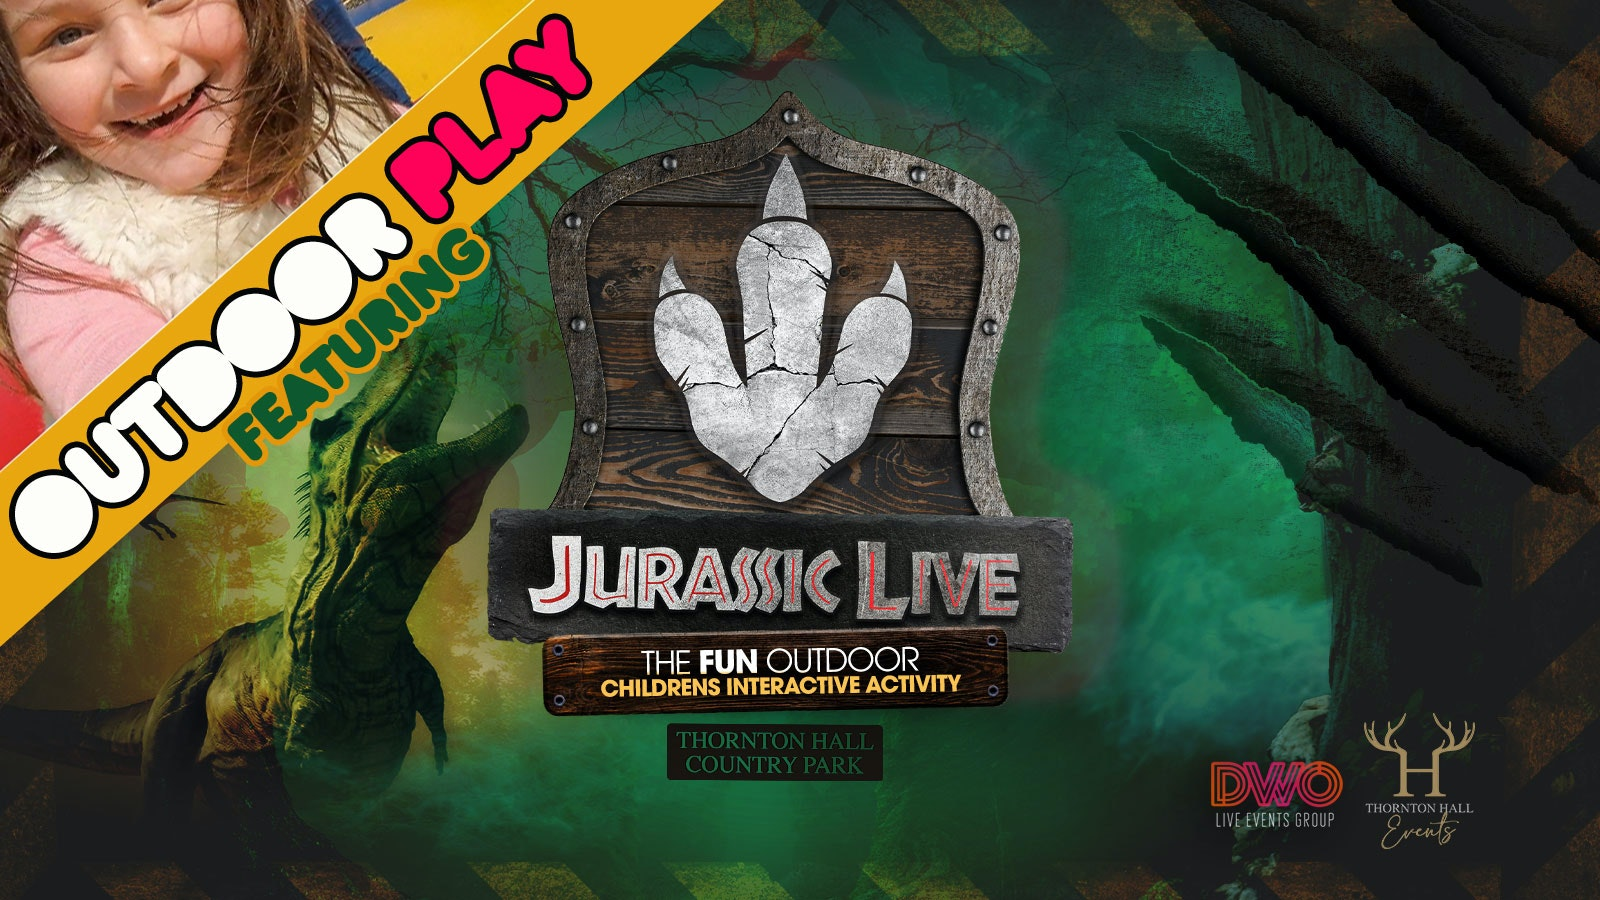 Jurassic Live inc Outdoor Play (Am) – Saturday 24th April – 10am